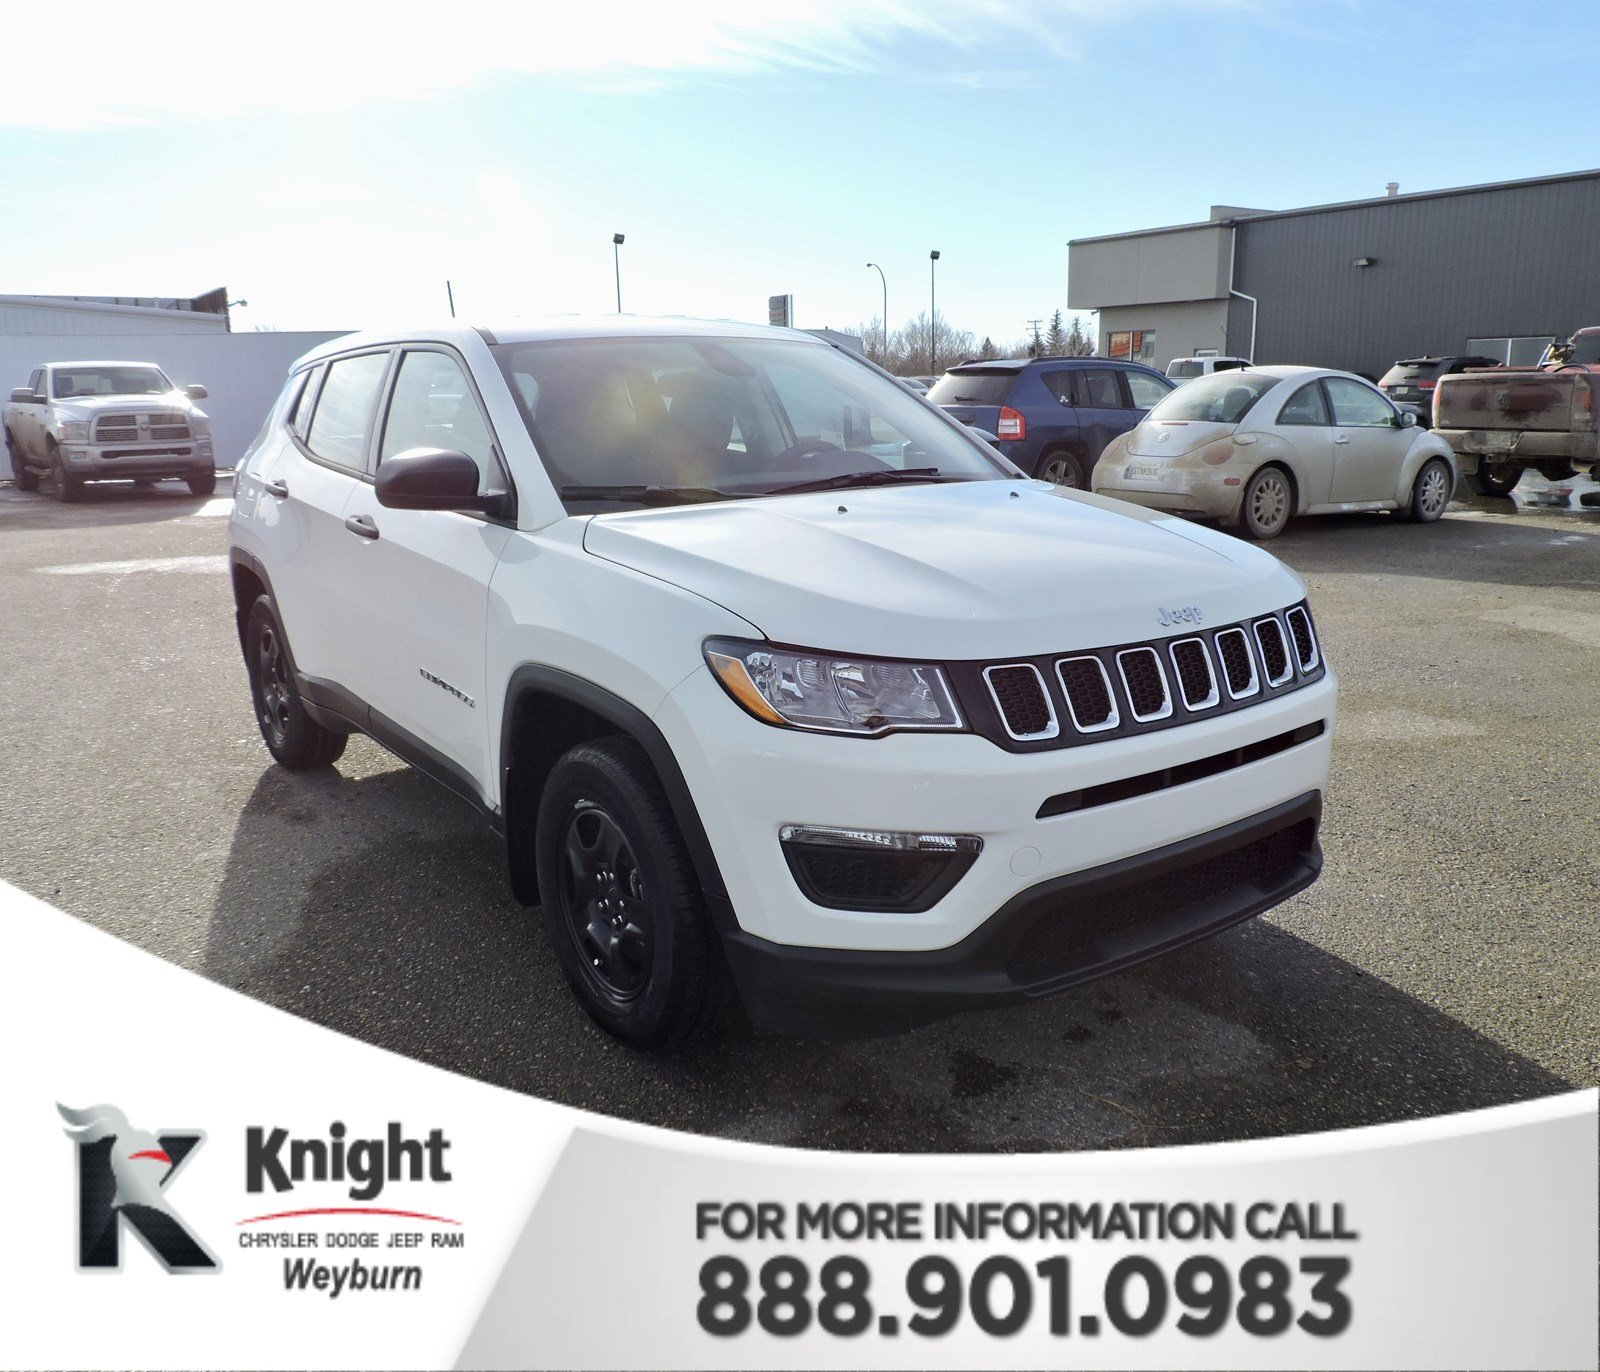 lease vehicles coupon near incentives you jeep offers save deals mart featured and on cherokee jokad discover blackhawk grand policy